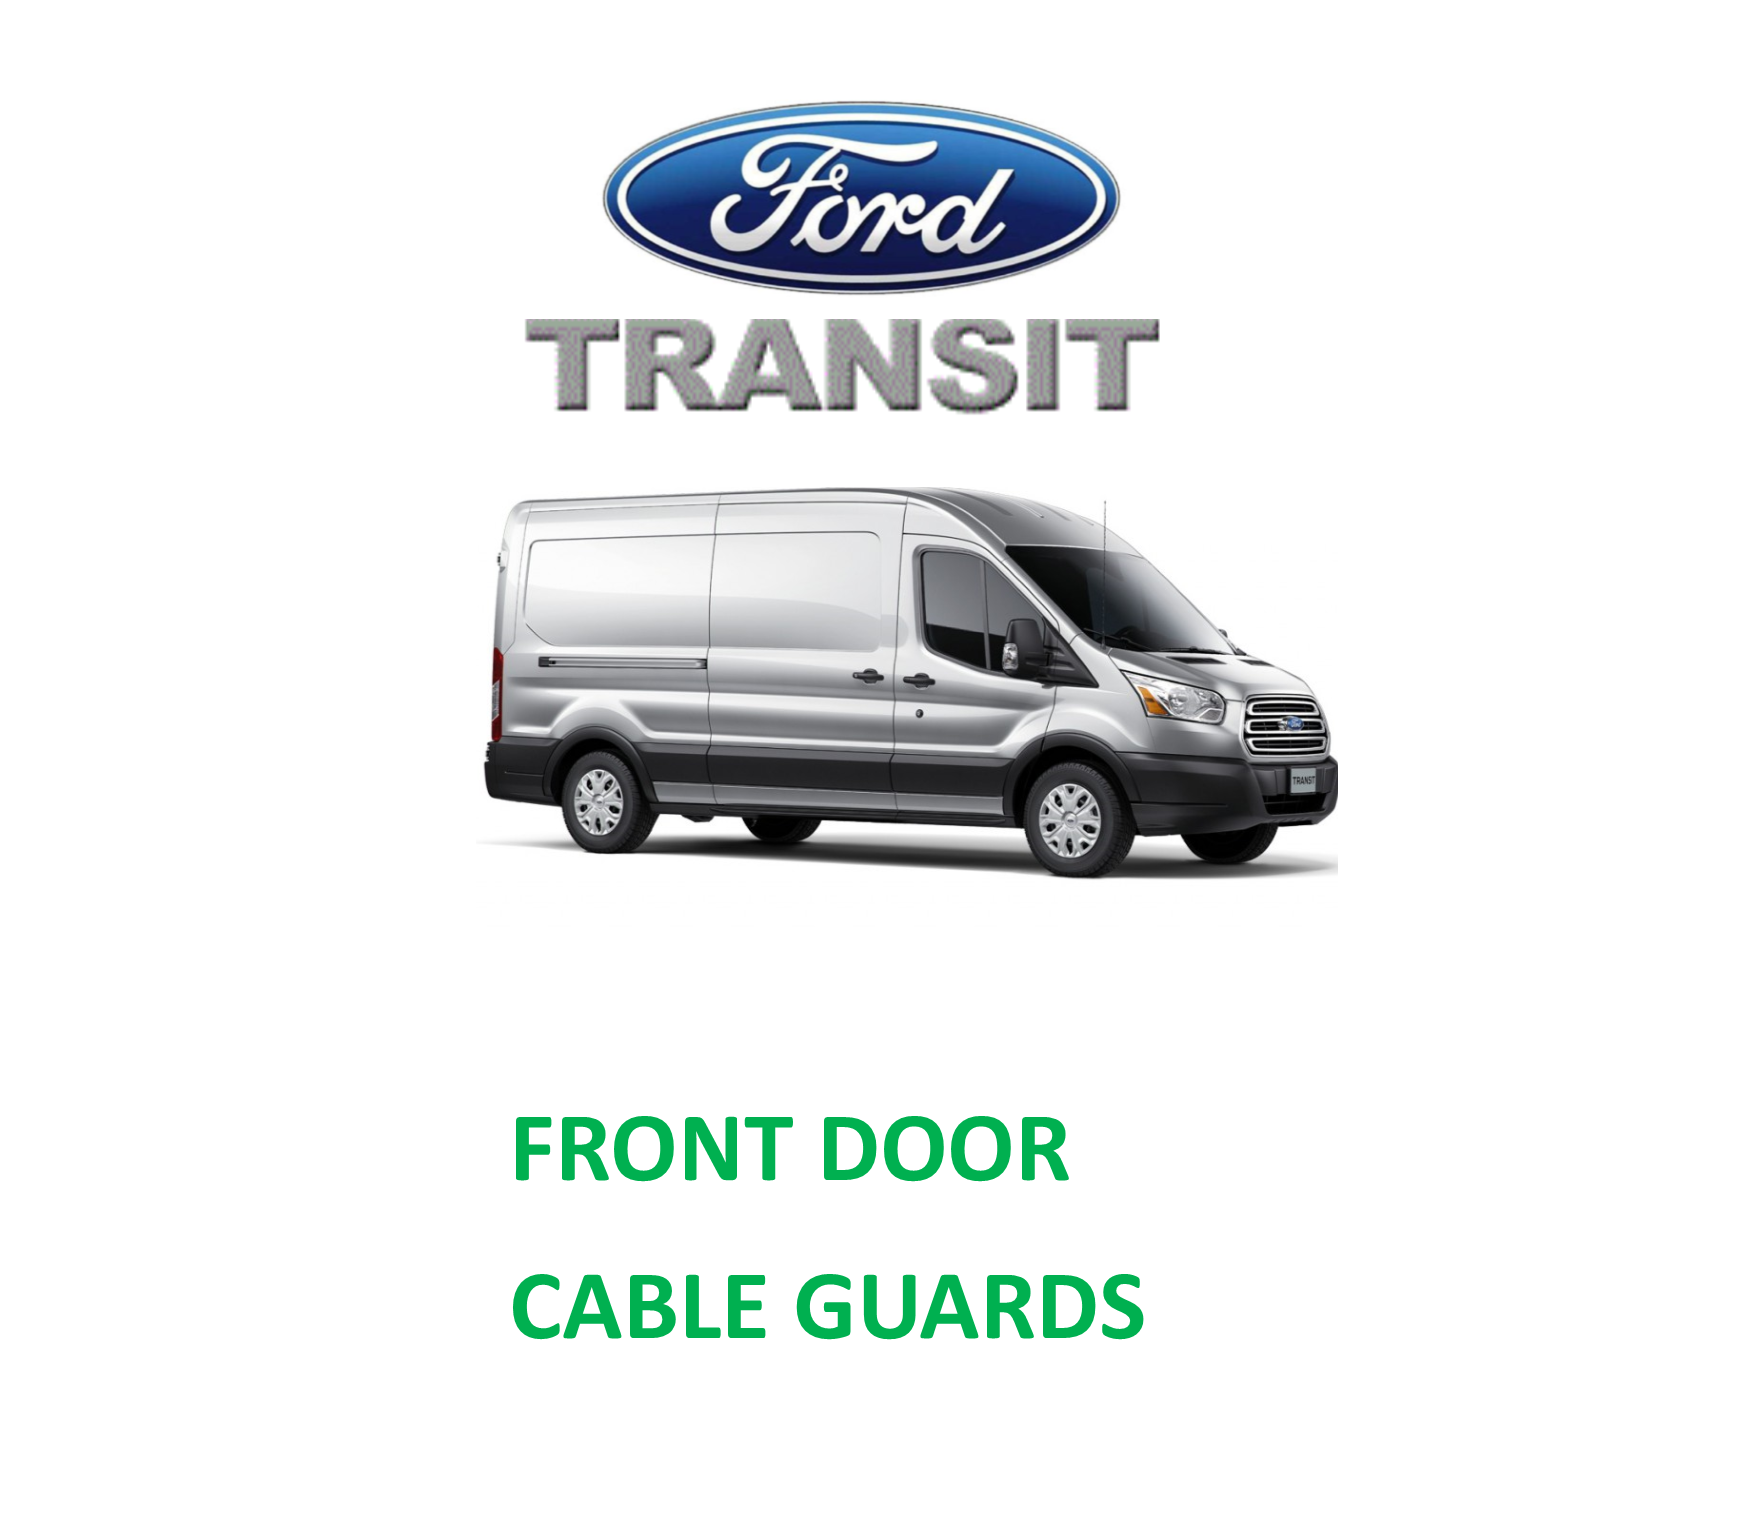 Ford Transit door cable Loom Guards